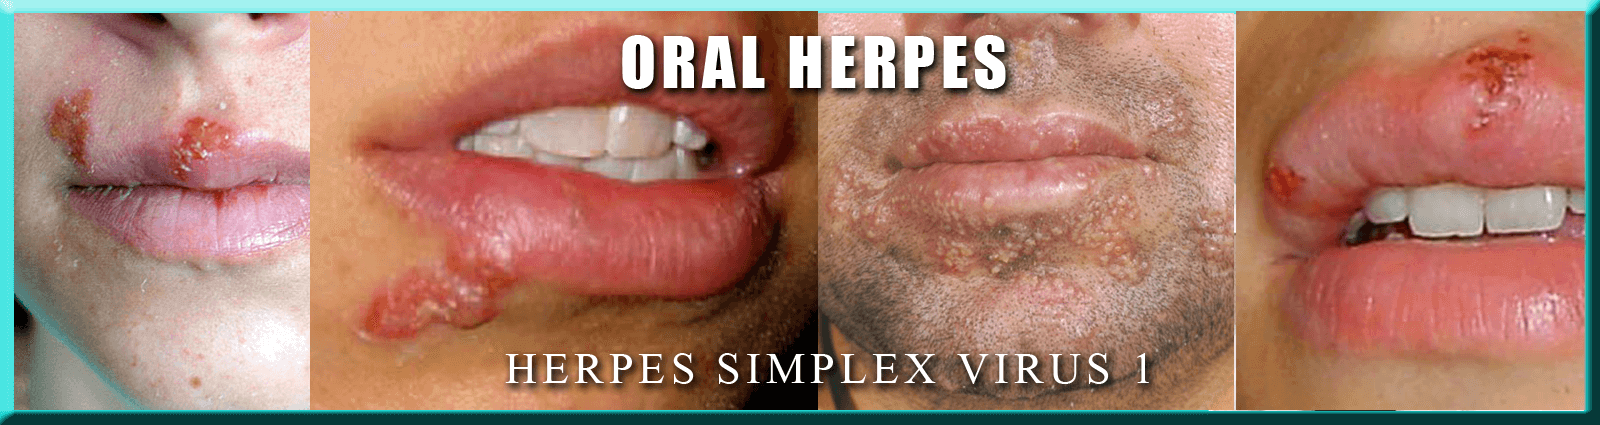 HERPES SIMPLEX TYPE 1 SYMPTOMS AND SIGNS